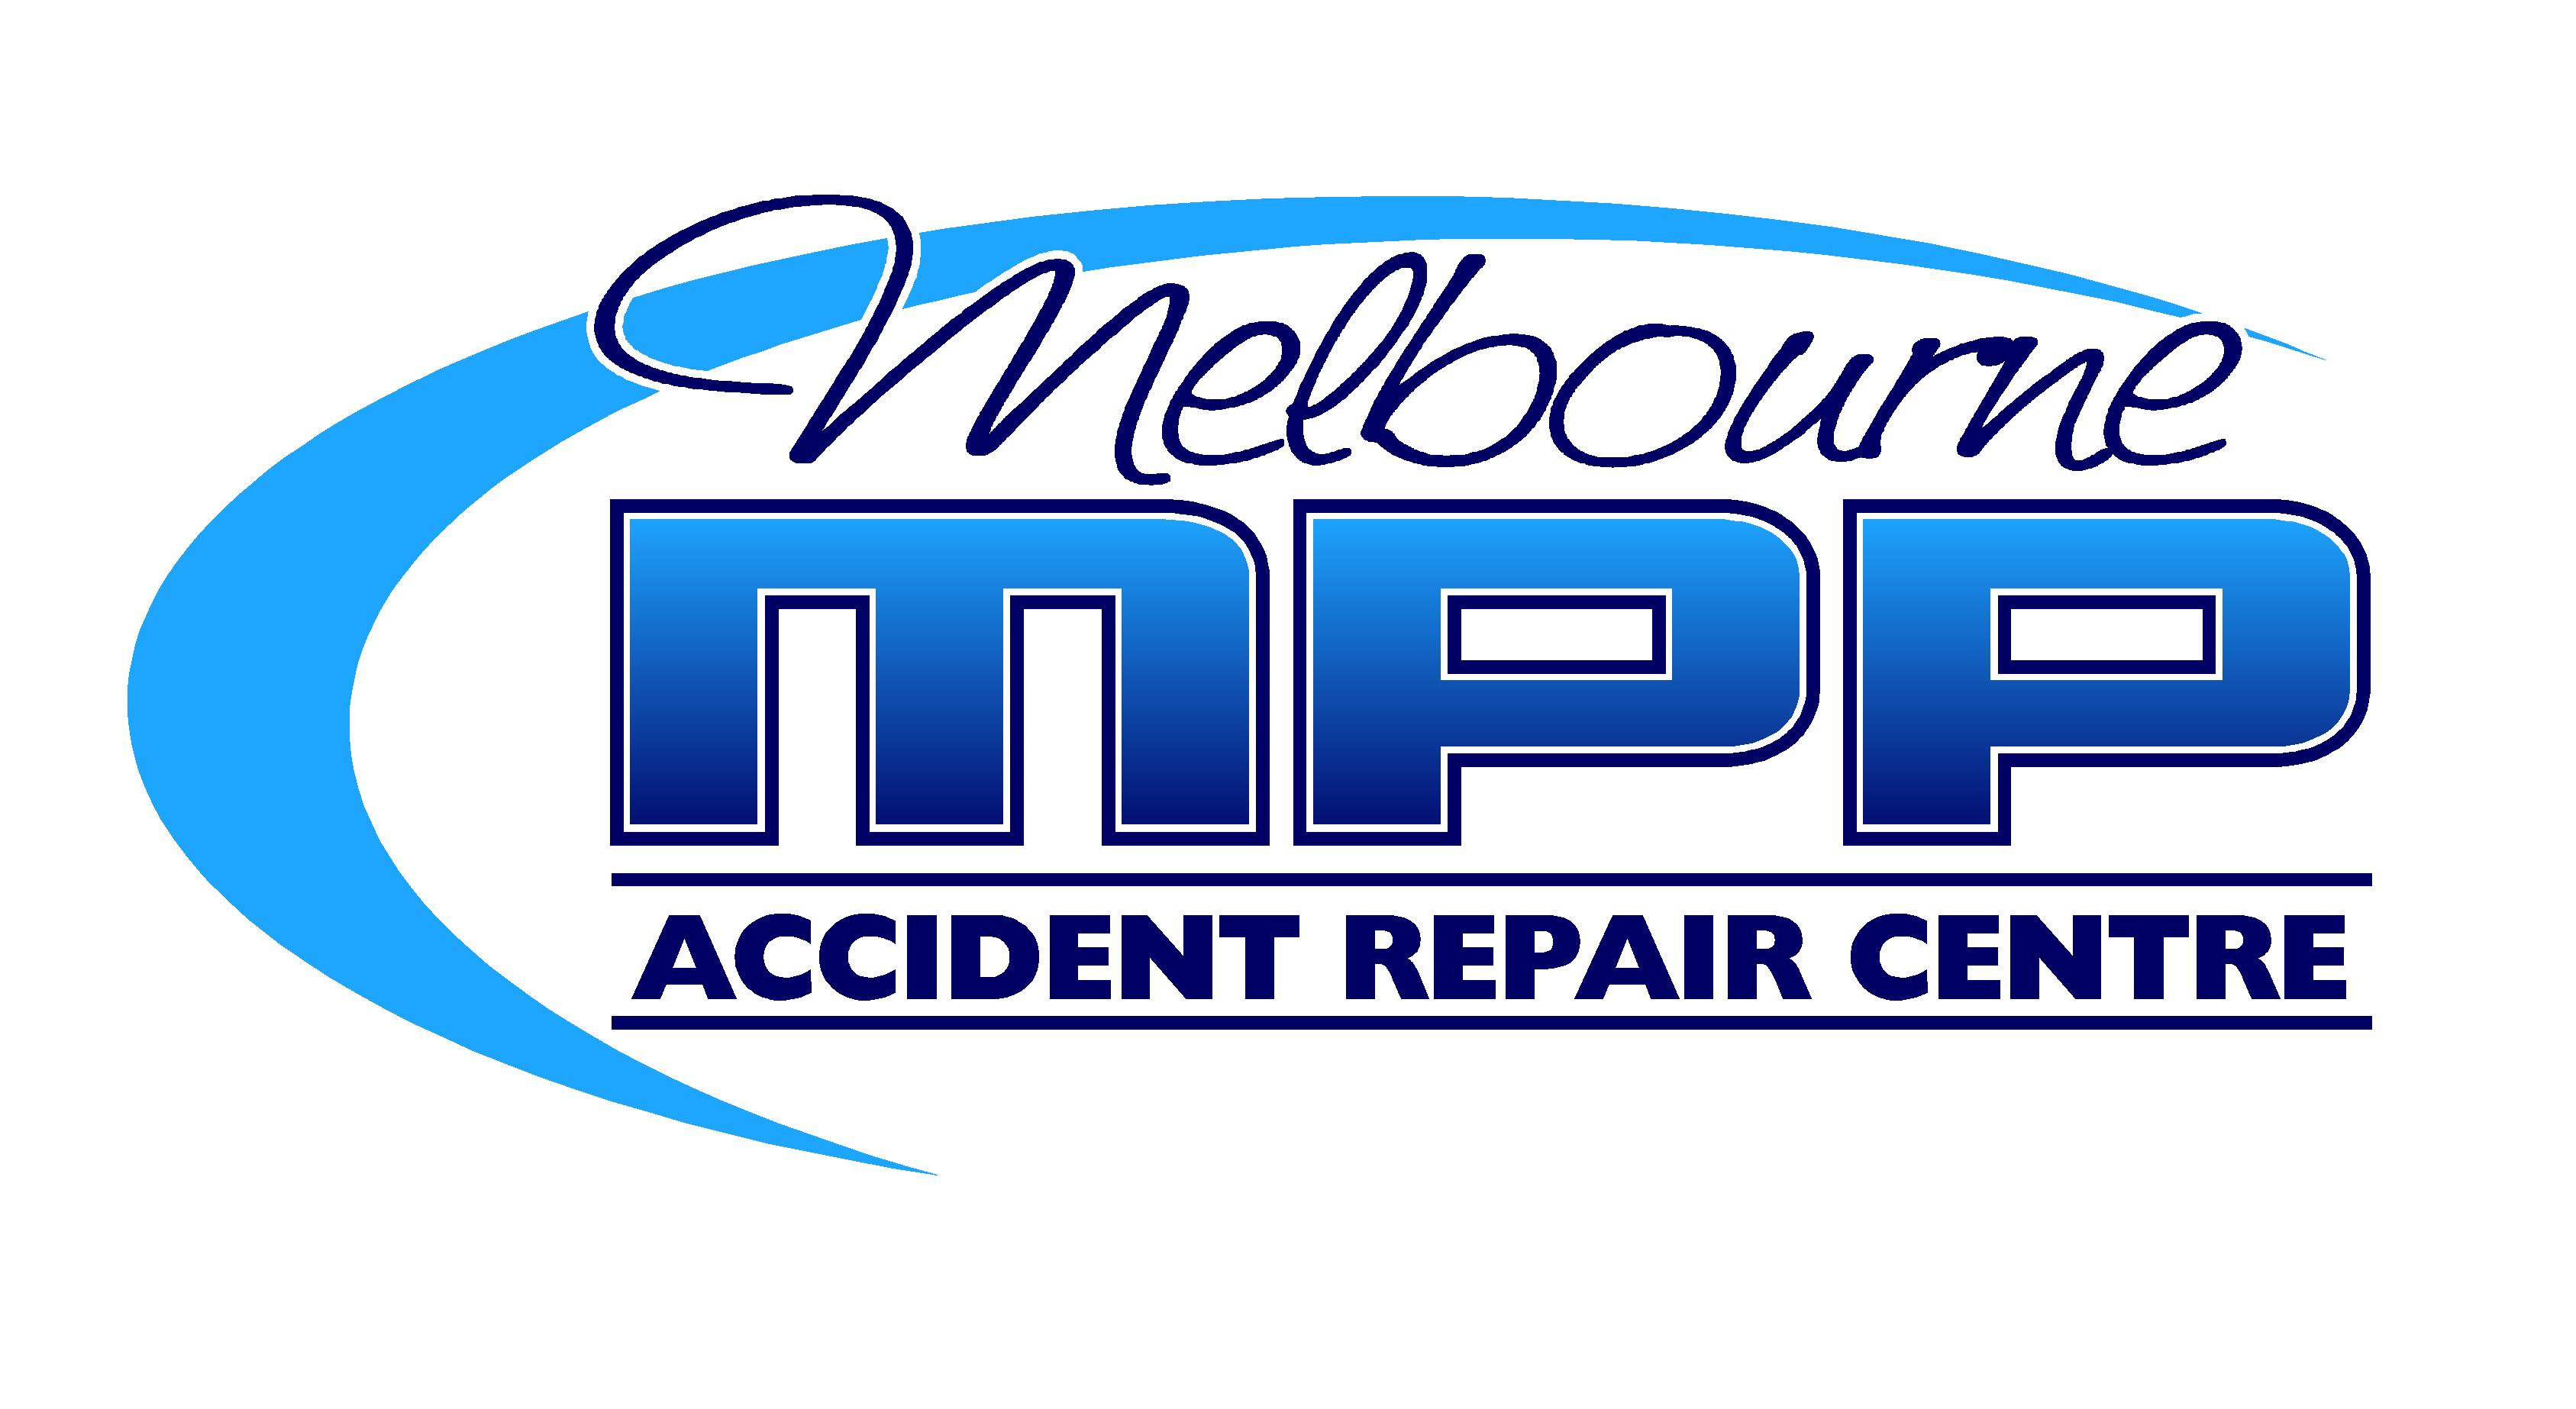 Smash Repairs Derrimut - Car Accident Insurance Work - Tarneit Car Smash Repairs - West Melbourne Panel Repairs